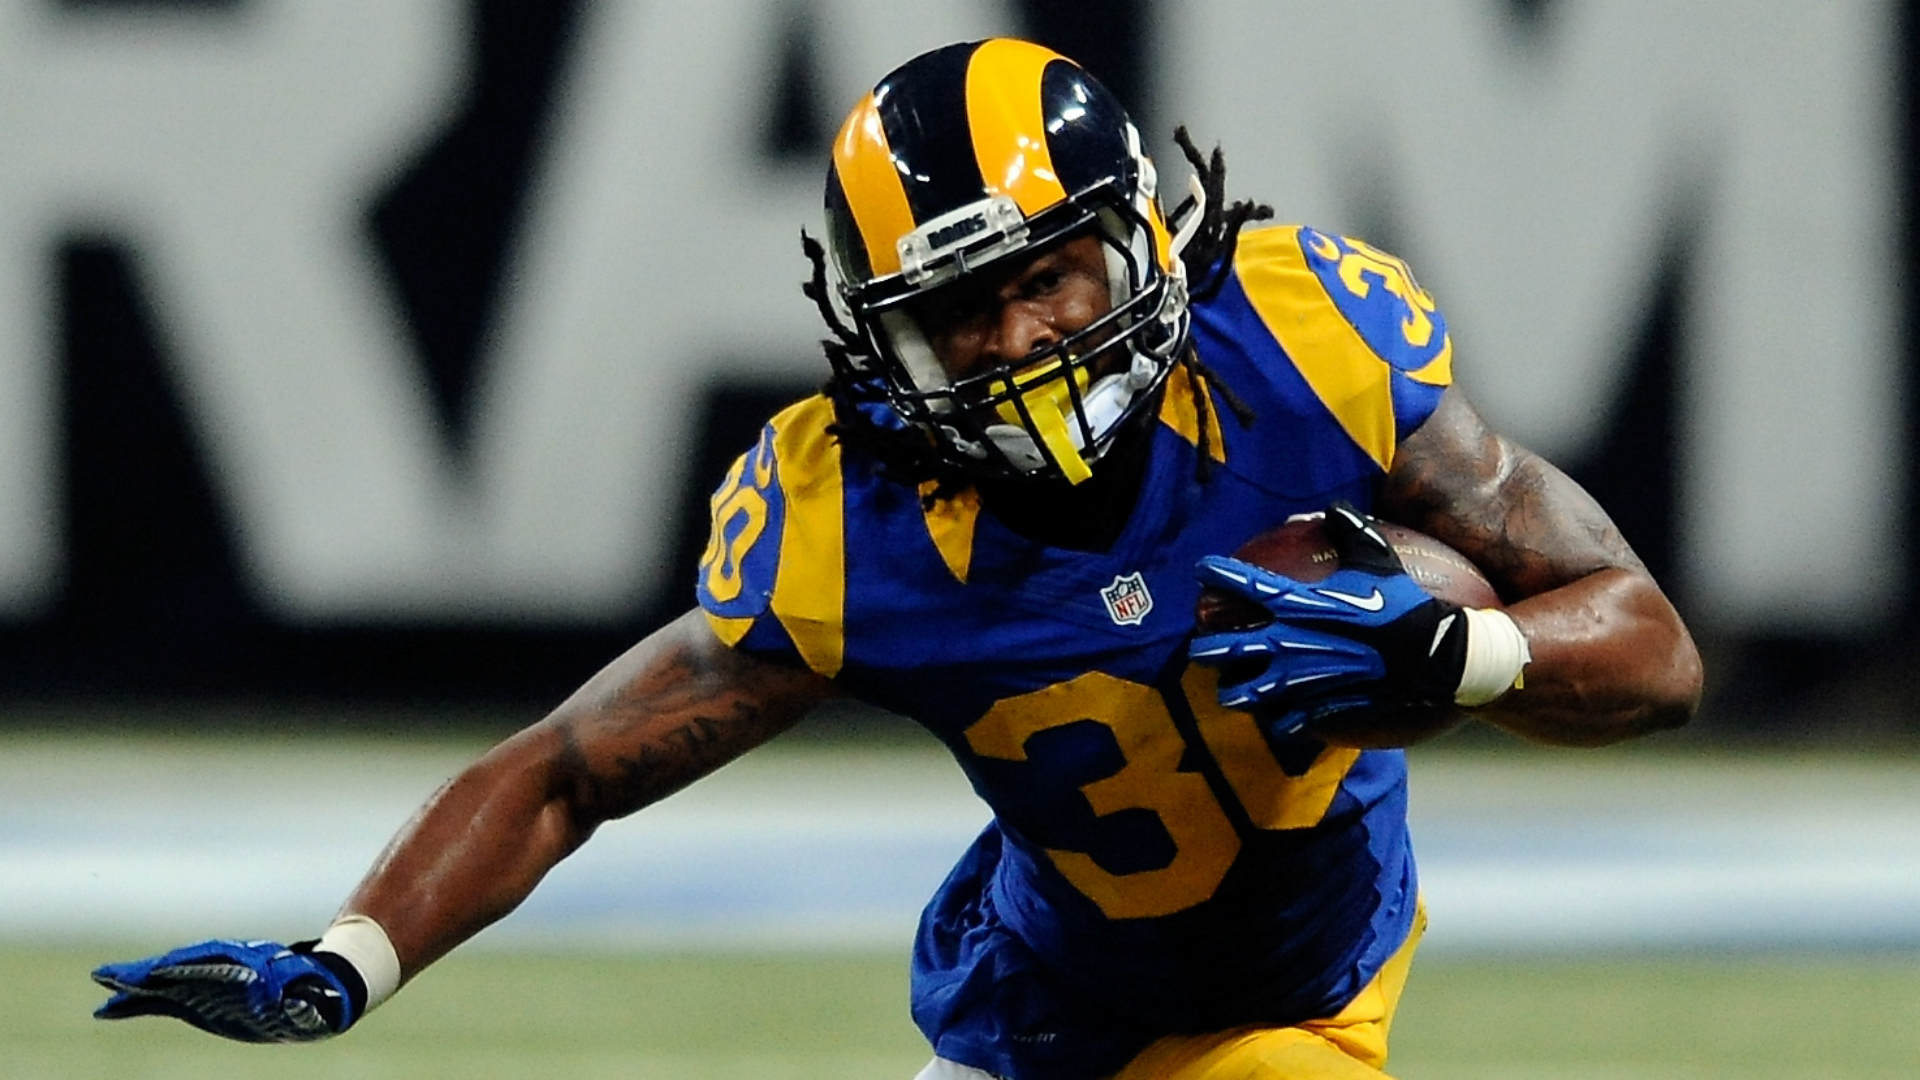 Sporting News NFL Rookie of the Year Todd Gurley rescuing Rams